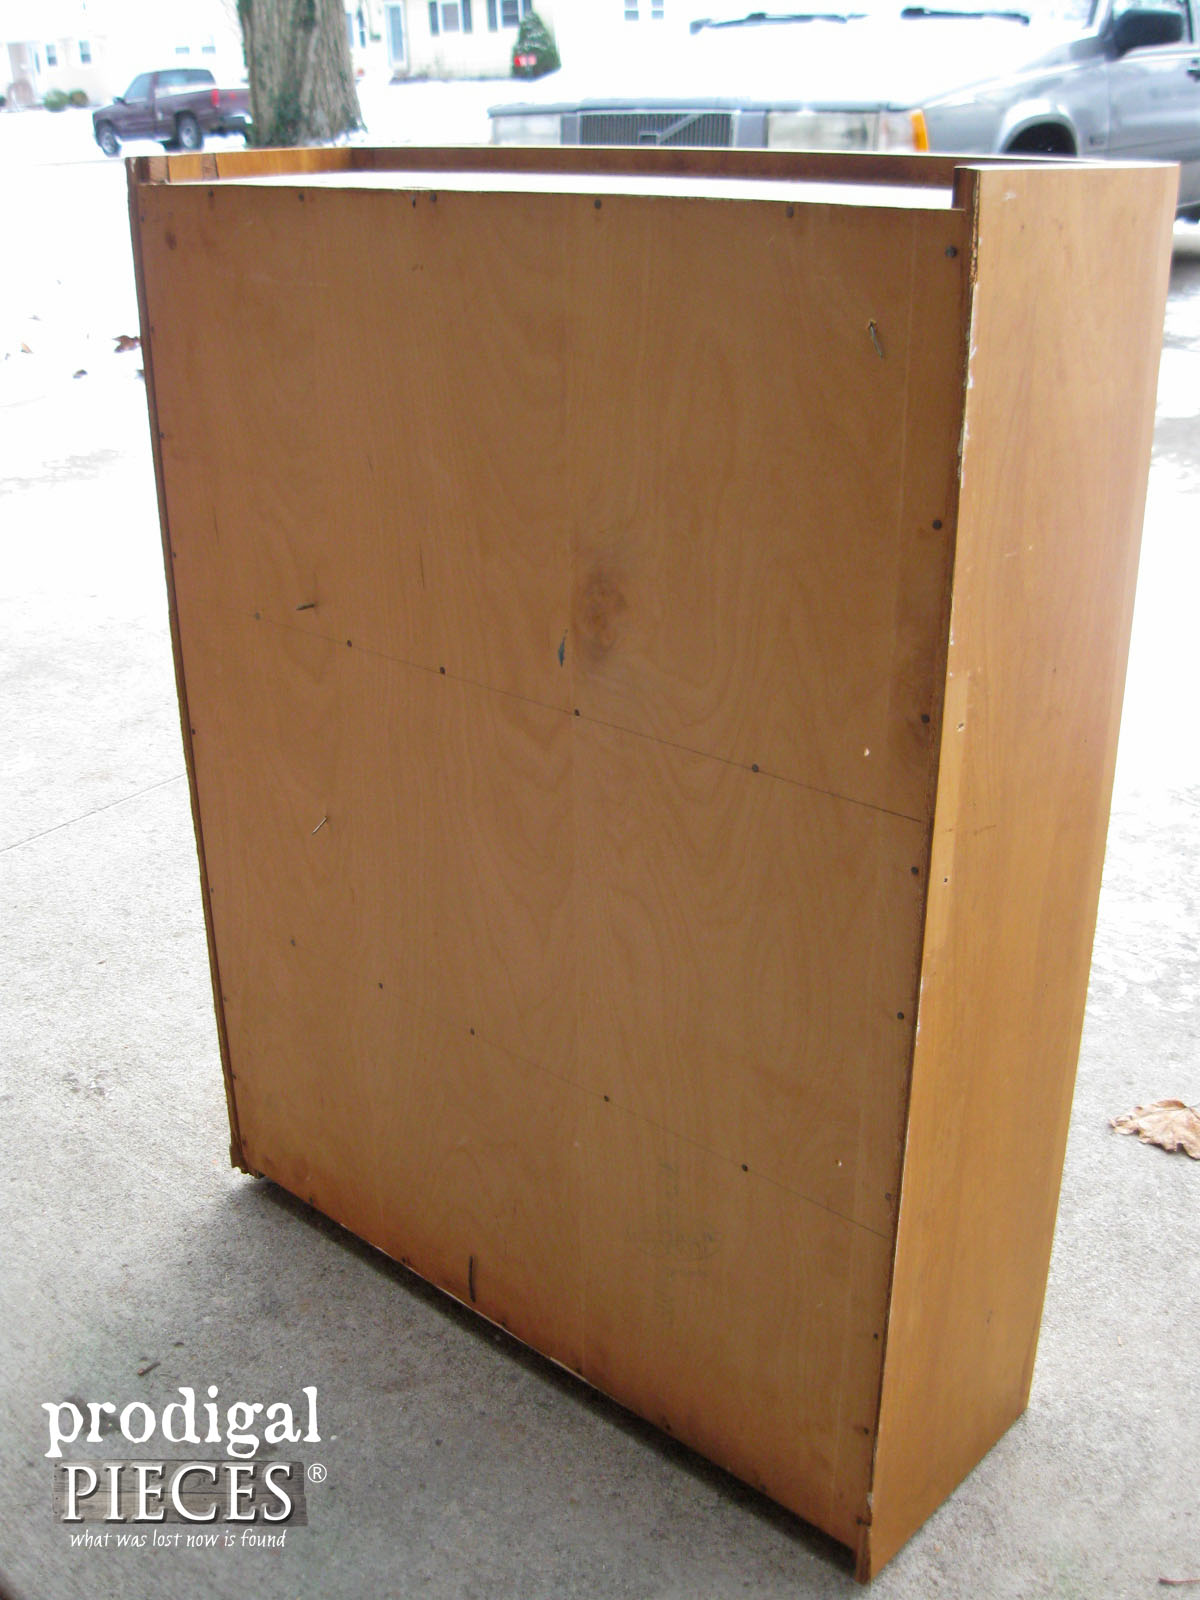 Back of Thrifted Cupboard for Makeover | Prodigal Pieces | prodigalpieces.com